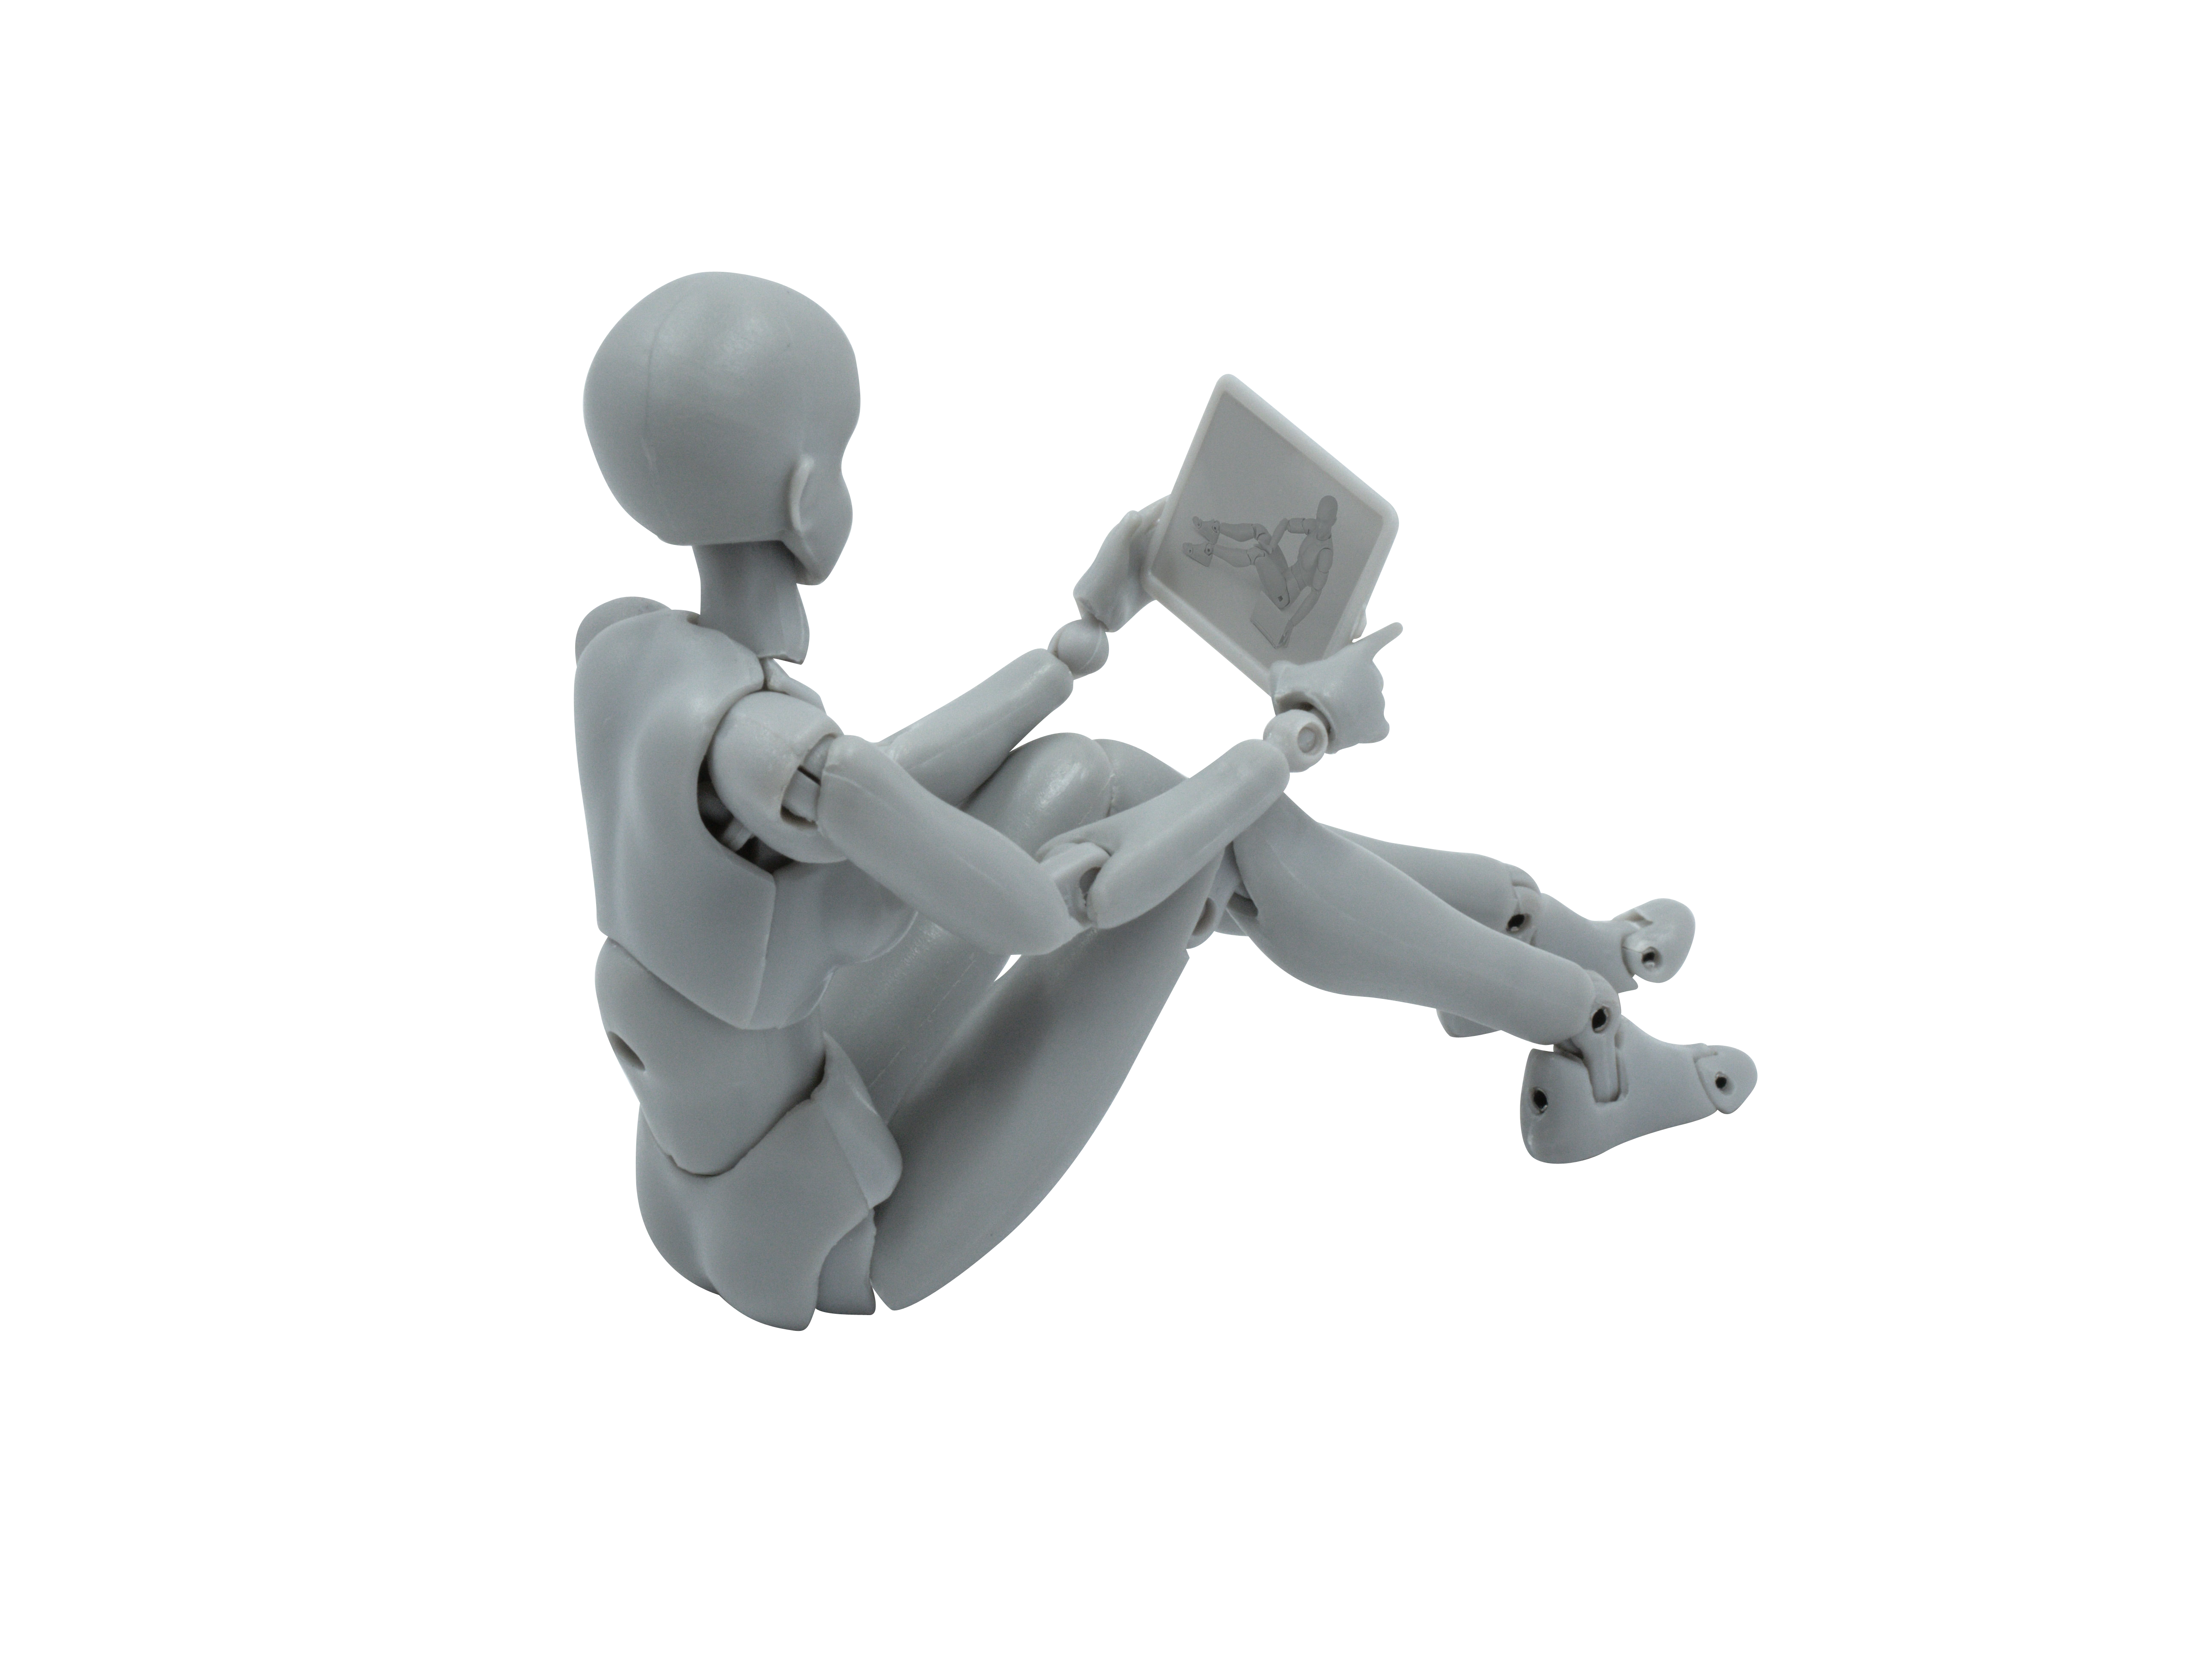 Mannequin Looking at Tablet Right Side Transparent Background PNG